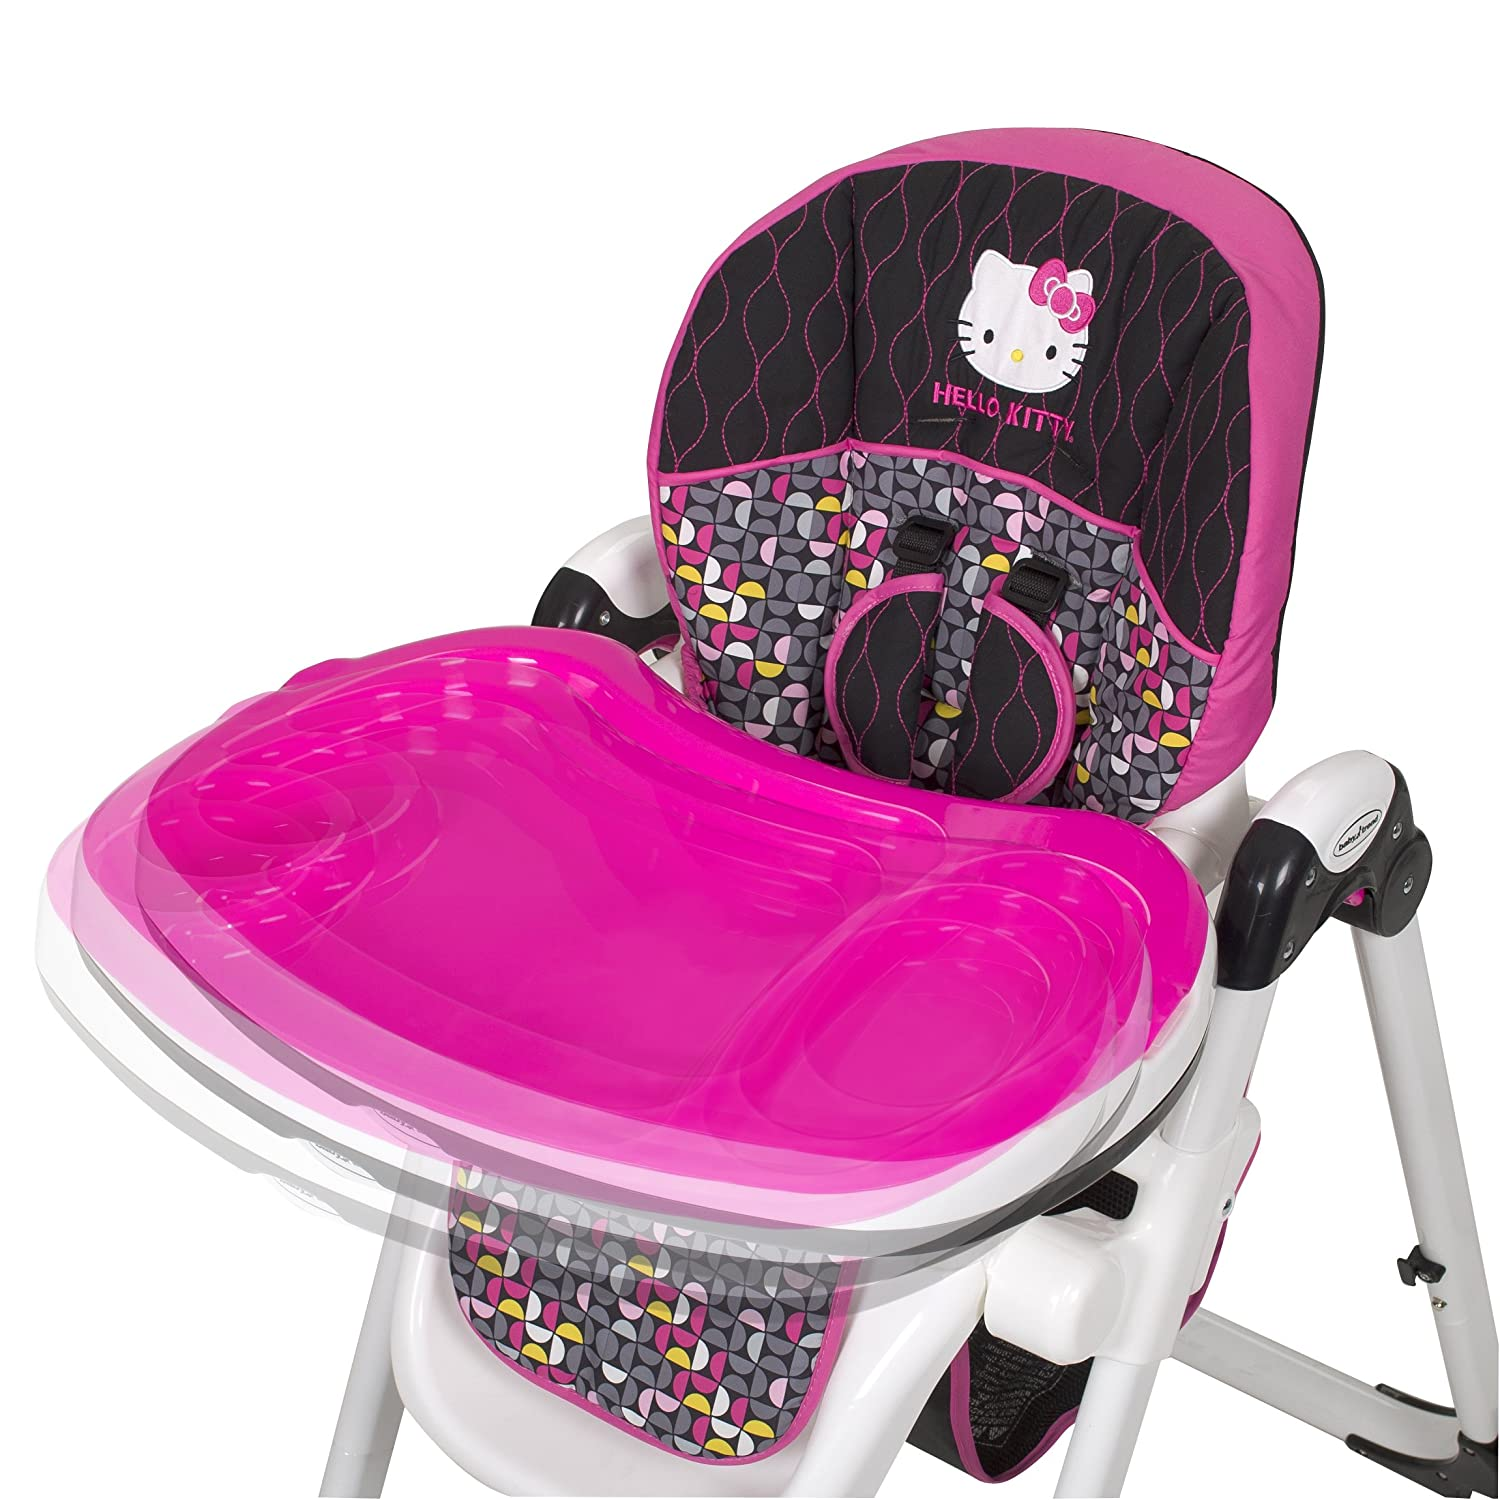 Hello kitty chair - Amazon Com Baby Trend Hello Kitty My Lift High Chair Pinwheel Baby